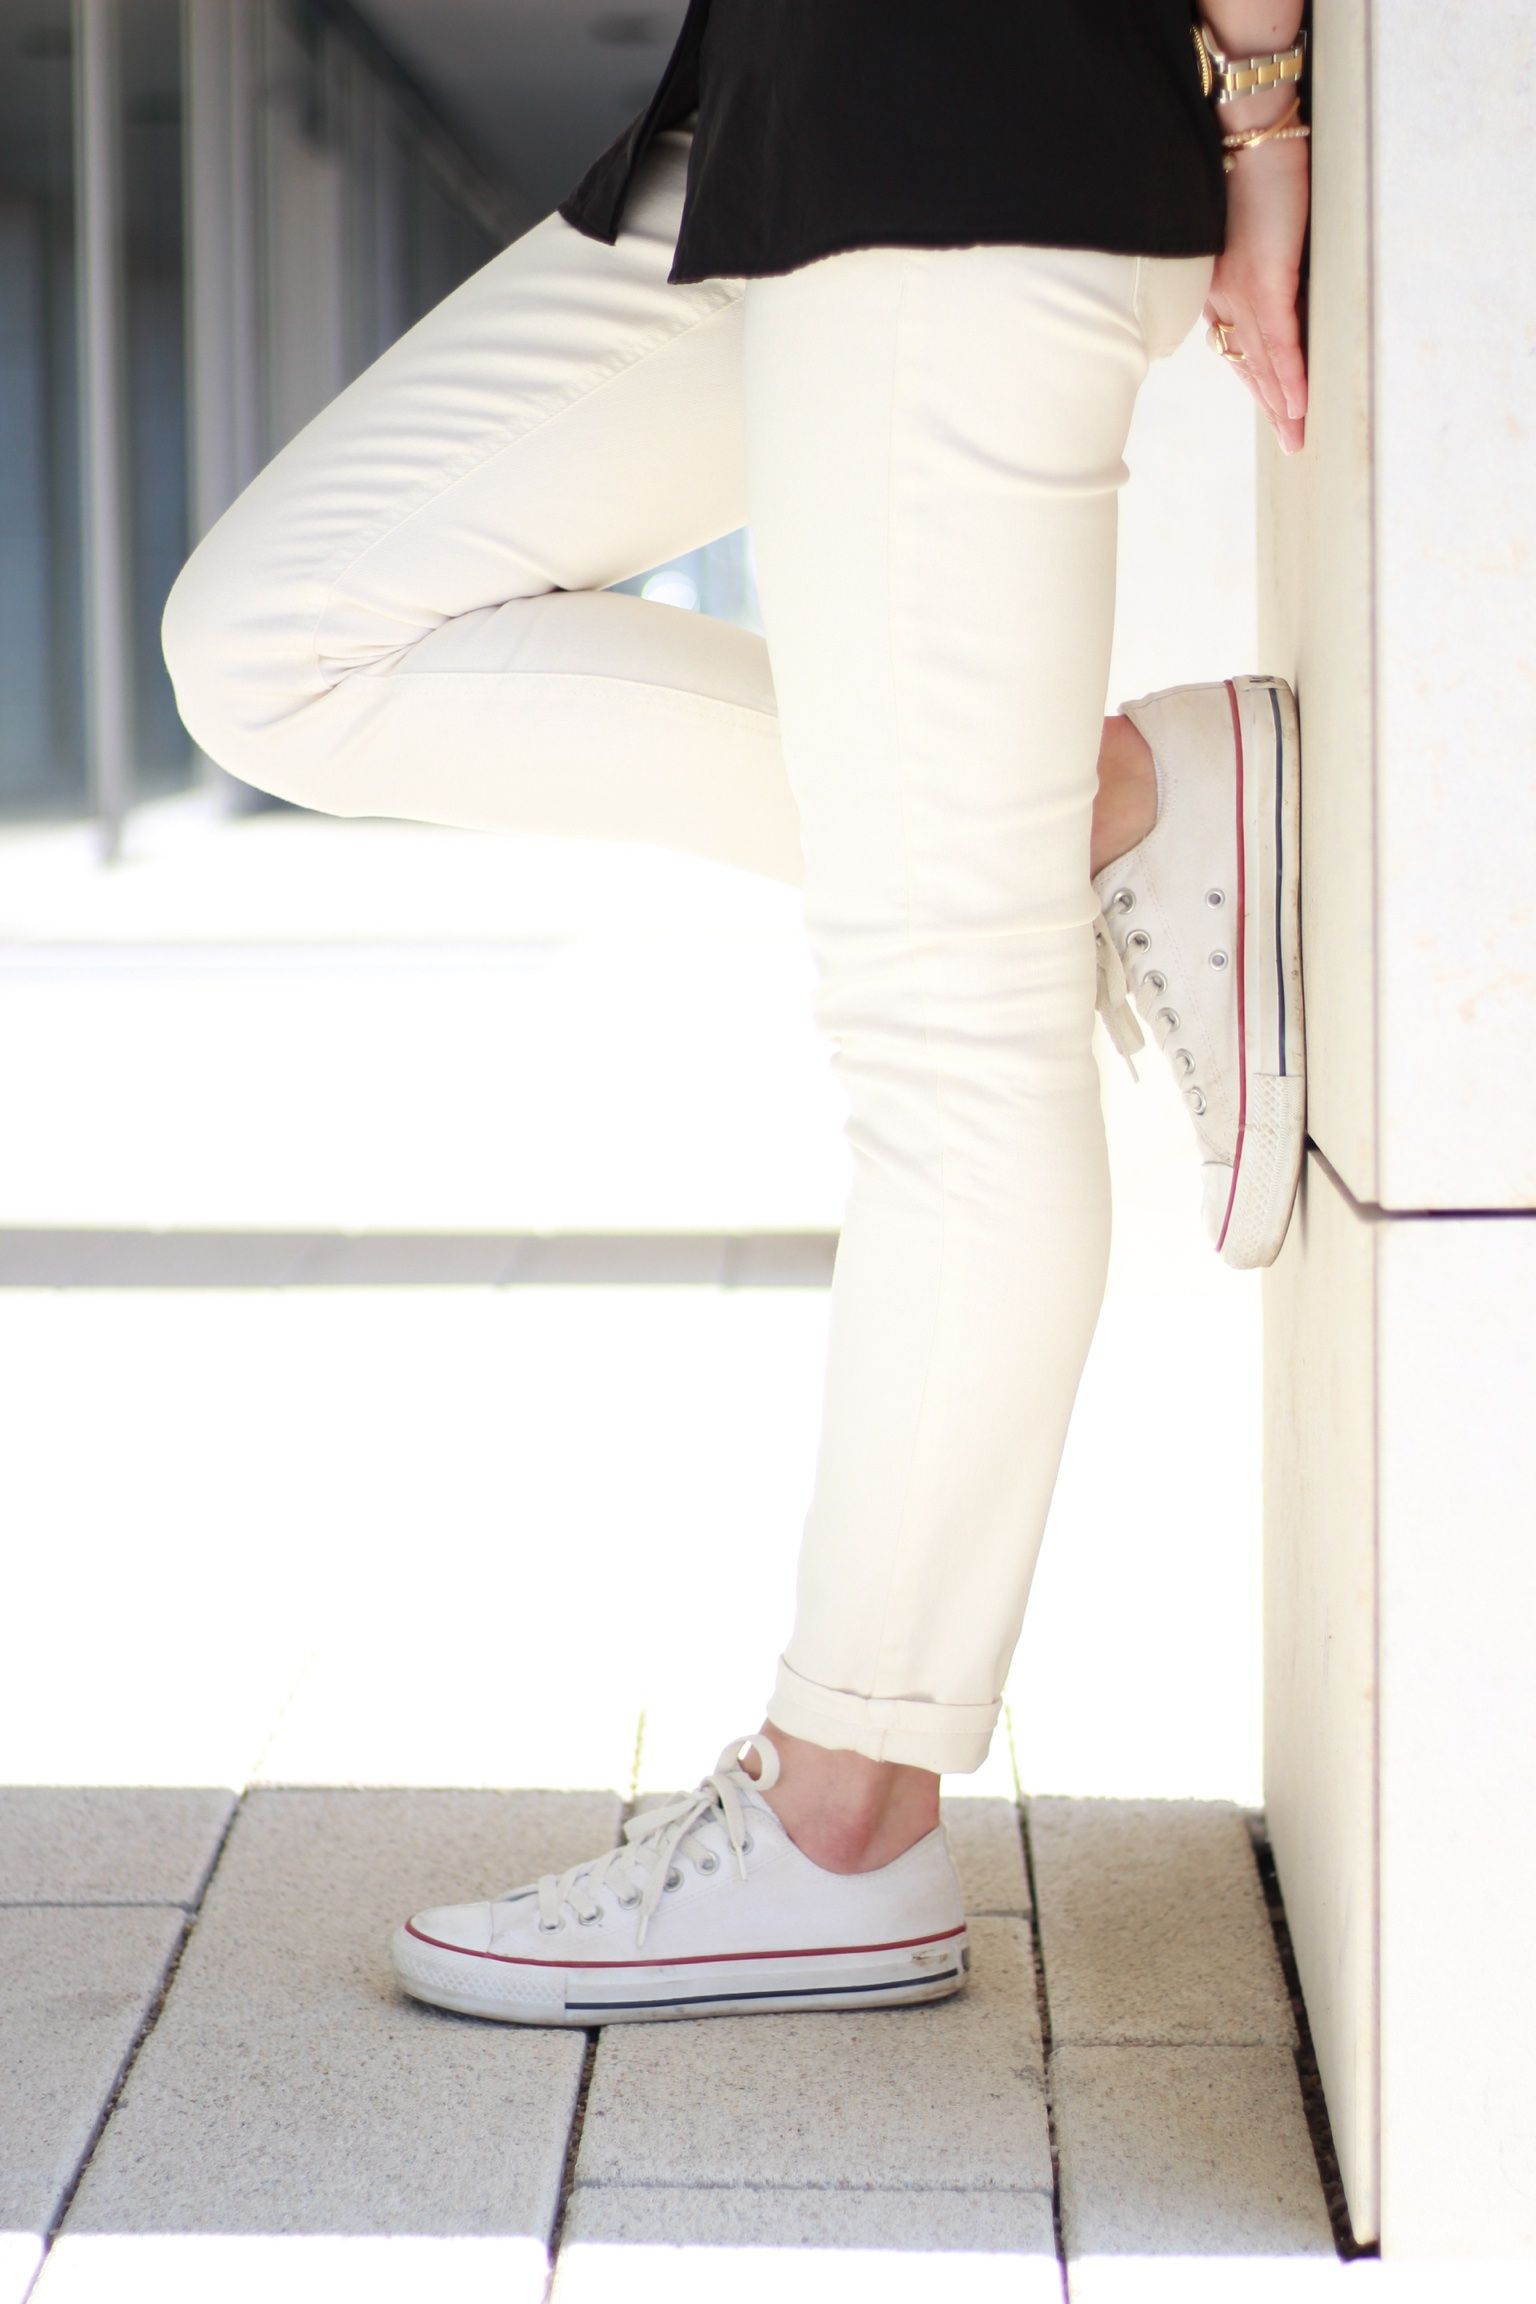 Selfnation, Jeans, Maßjeans, Trends, 2016, Fashion, Blog